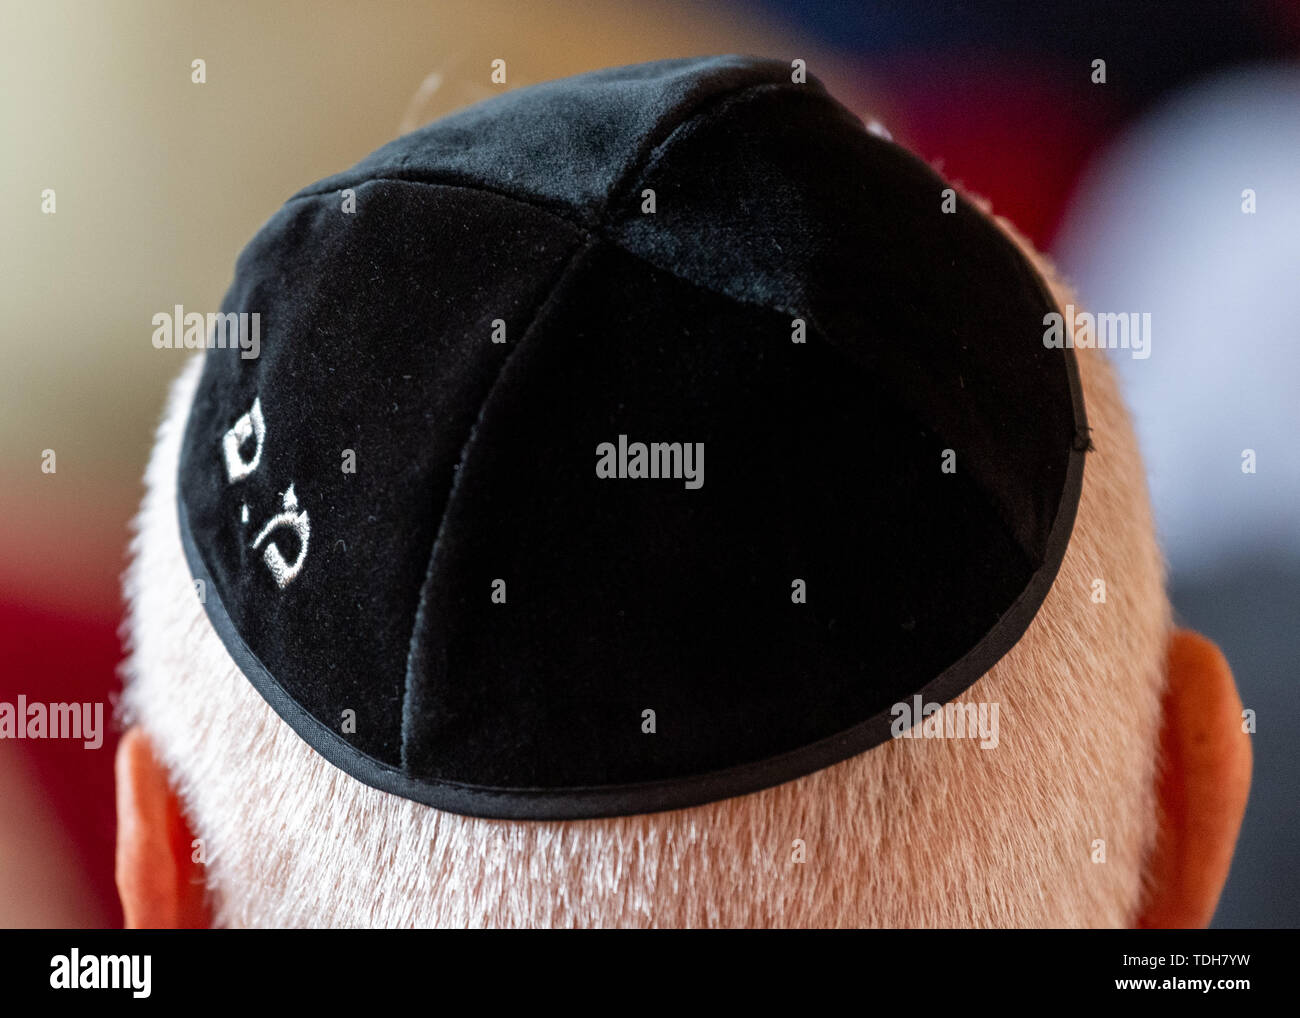 Dresden, Germany. 16th June, 2019. A participant of the ceremonial inauguration of the new Tora roll for Dresden in the city hall wears a kippa. Credit: Robert Michael/dpa-Zentralbild/dpa/Alamy Live News - Stock Image